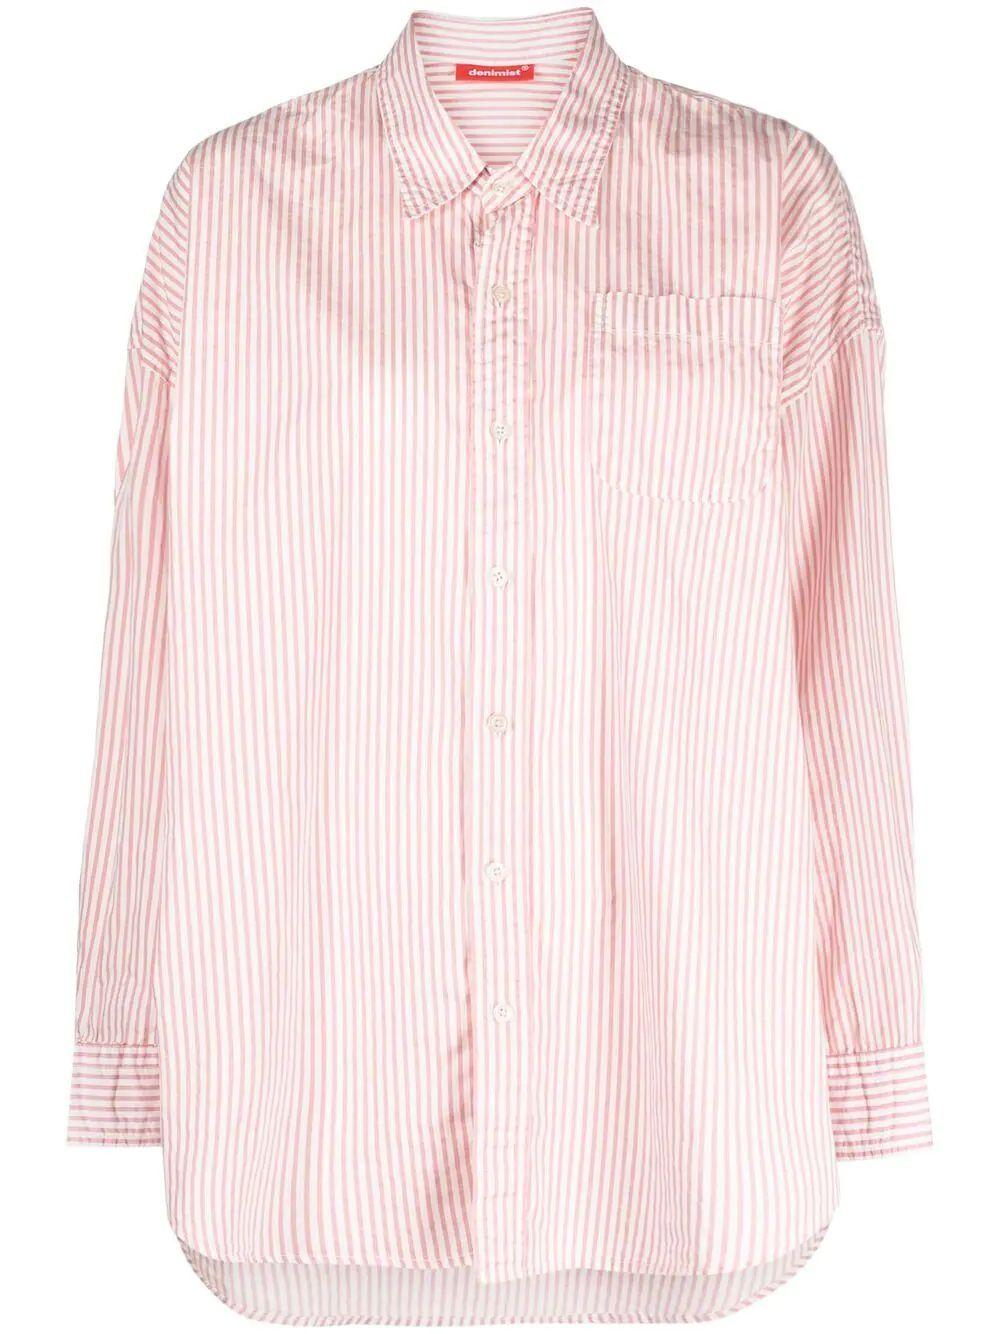 Button Front Striped Shirt Item # DSW4230-565